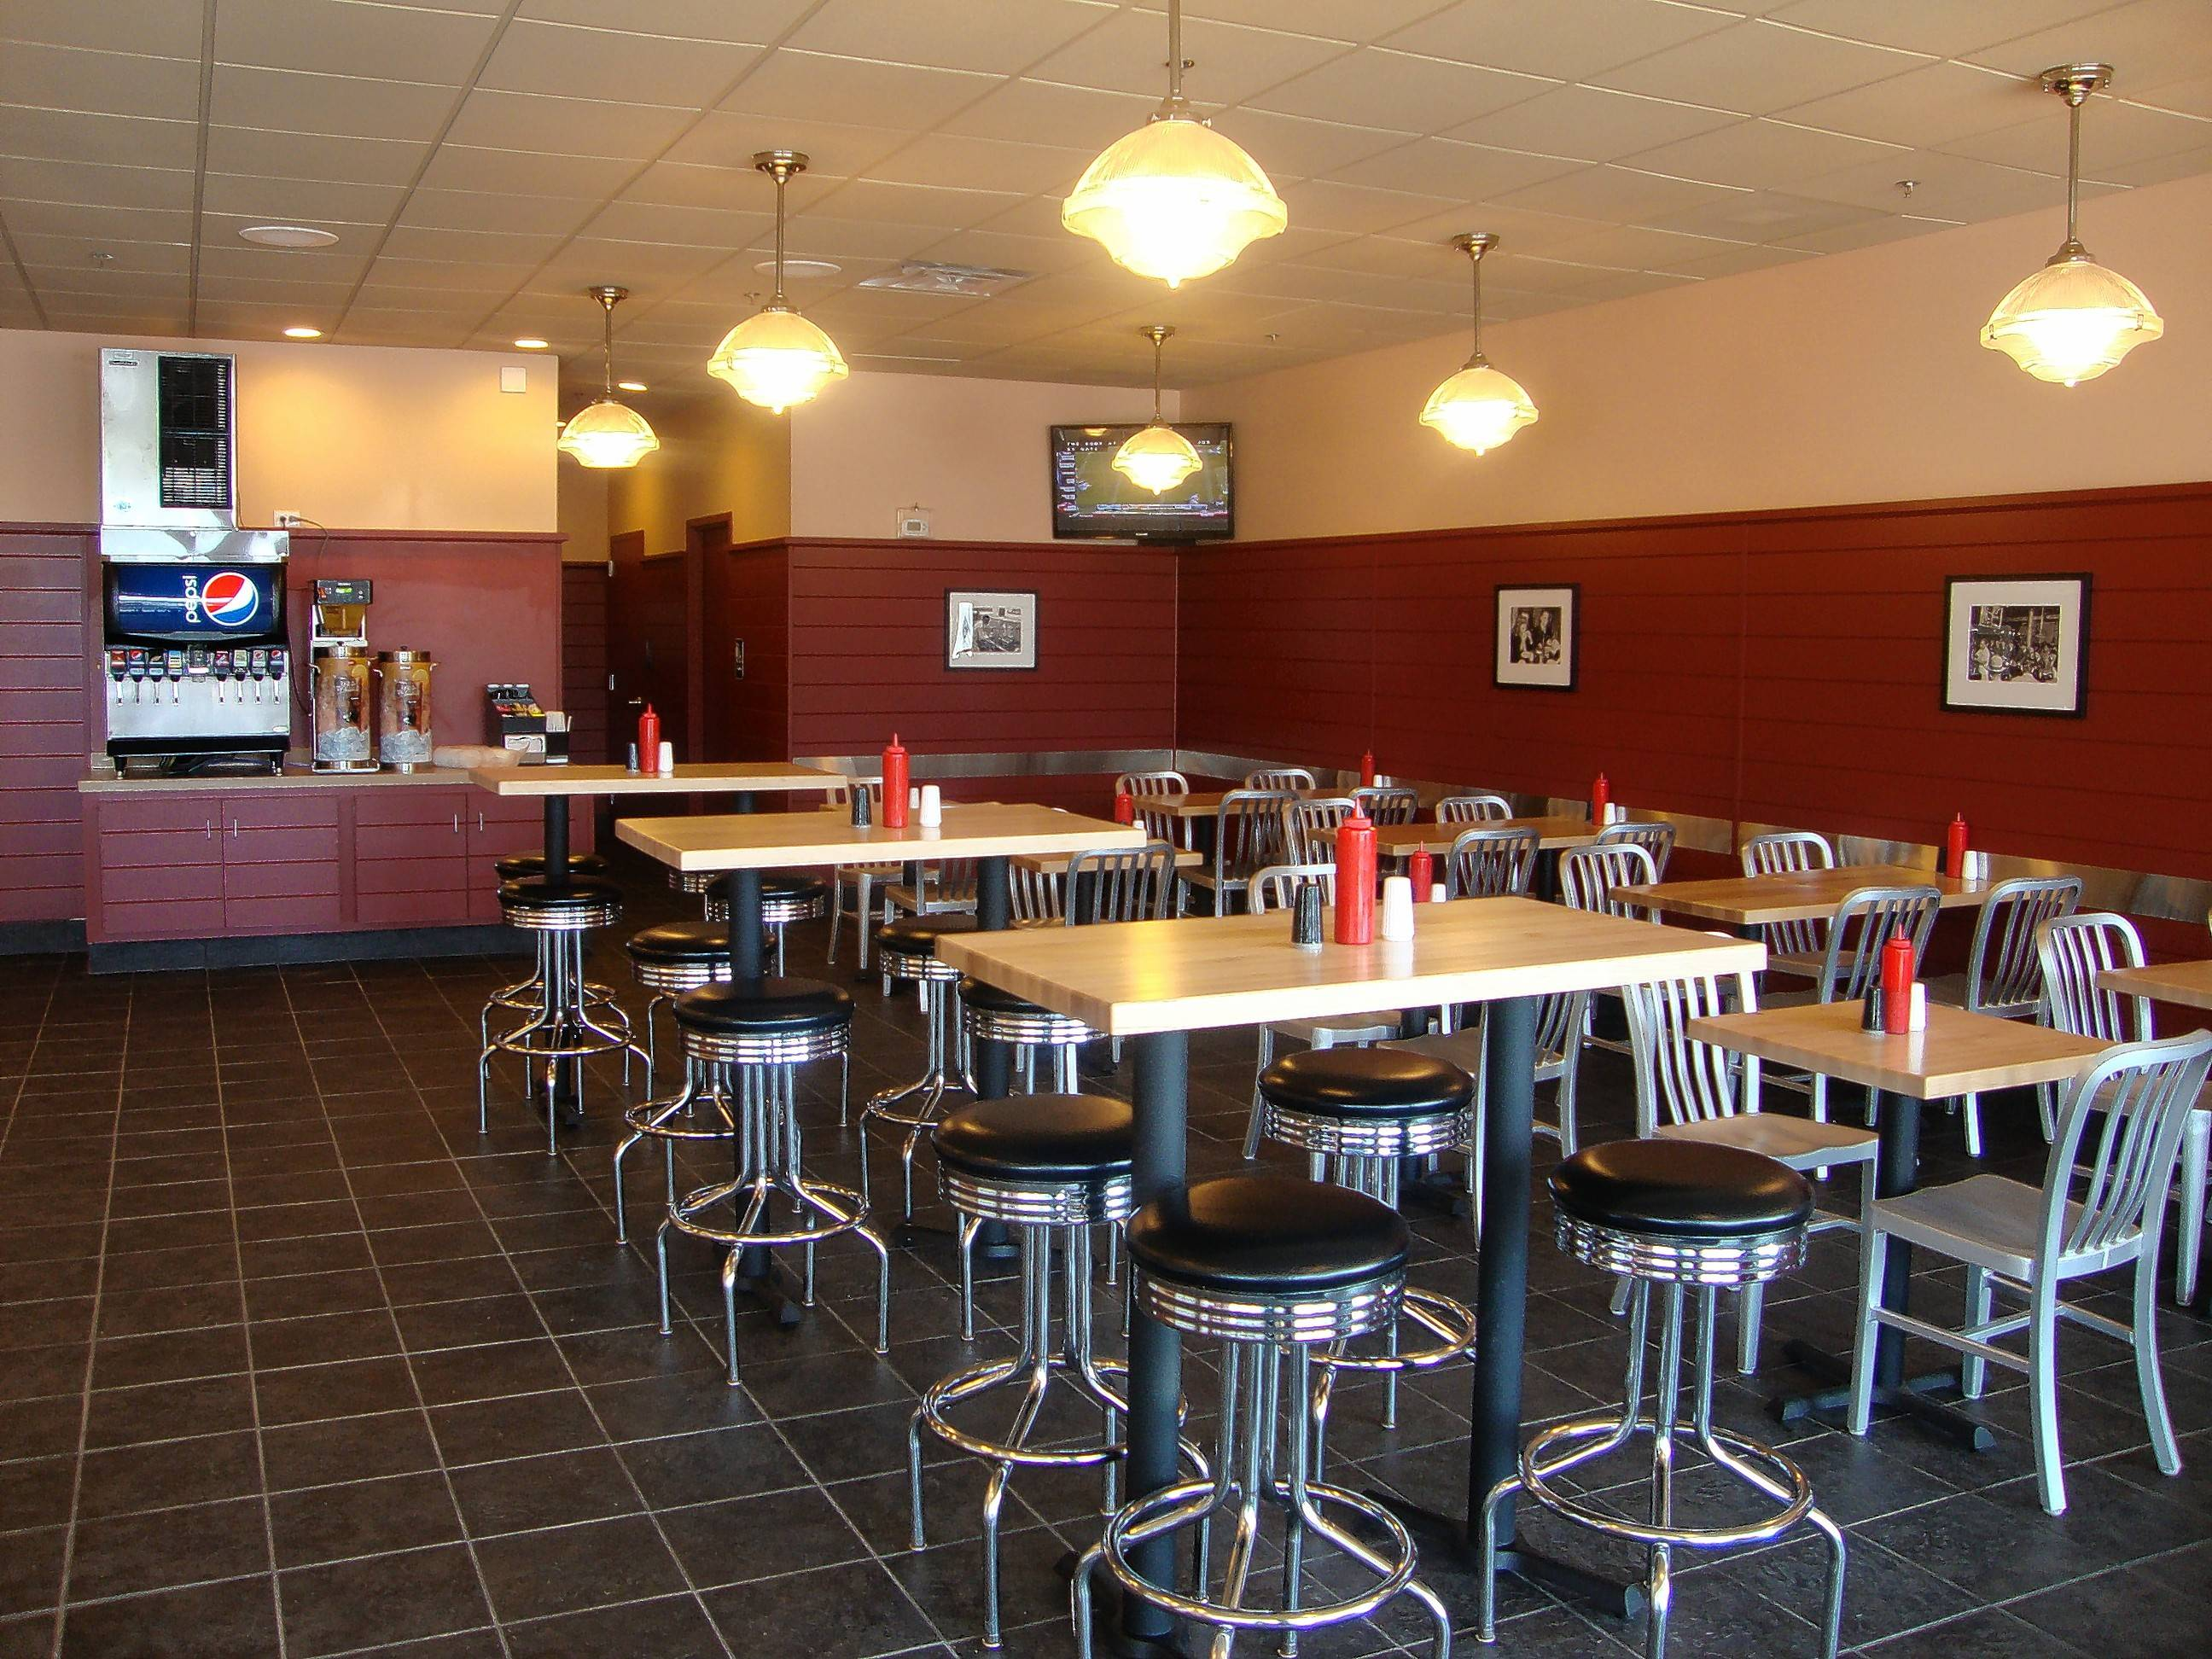 The interior of Wayback Burgers, which opened its first Illinois restaurant last spring in Naperville, takes diners back to a simpler place and time during the era of the classic burger joint.